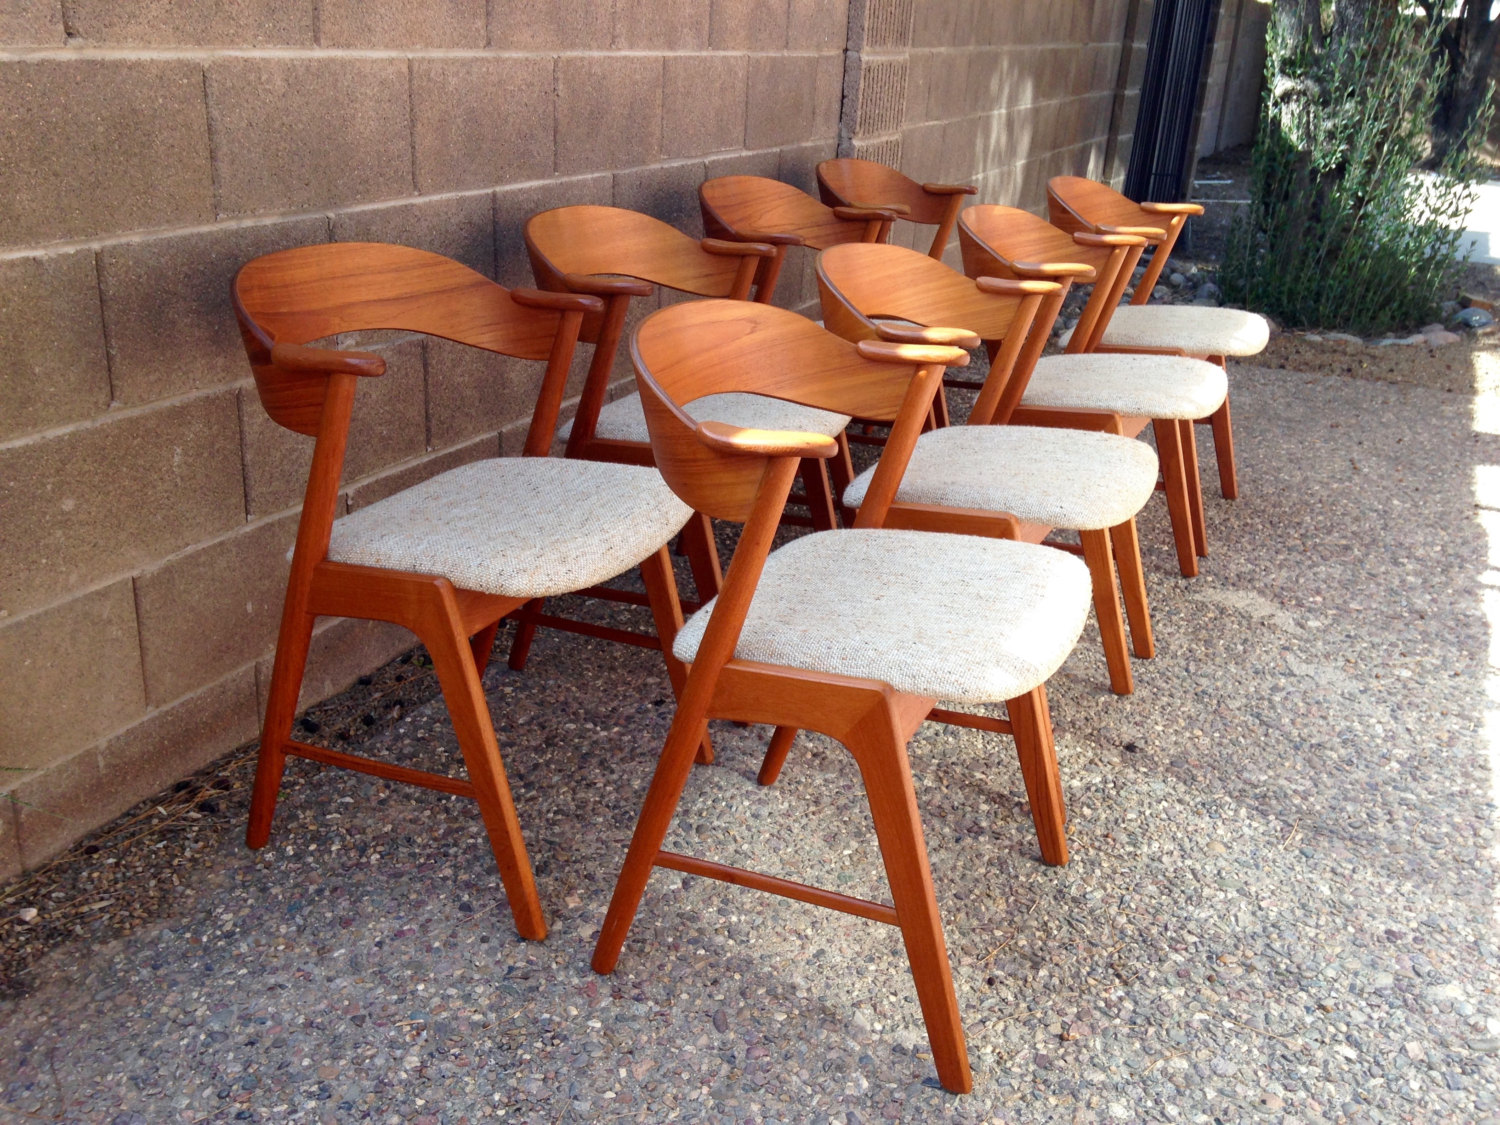 danish modern furniture designs ideas plans  design trends  - set of  danish modern dining chairs